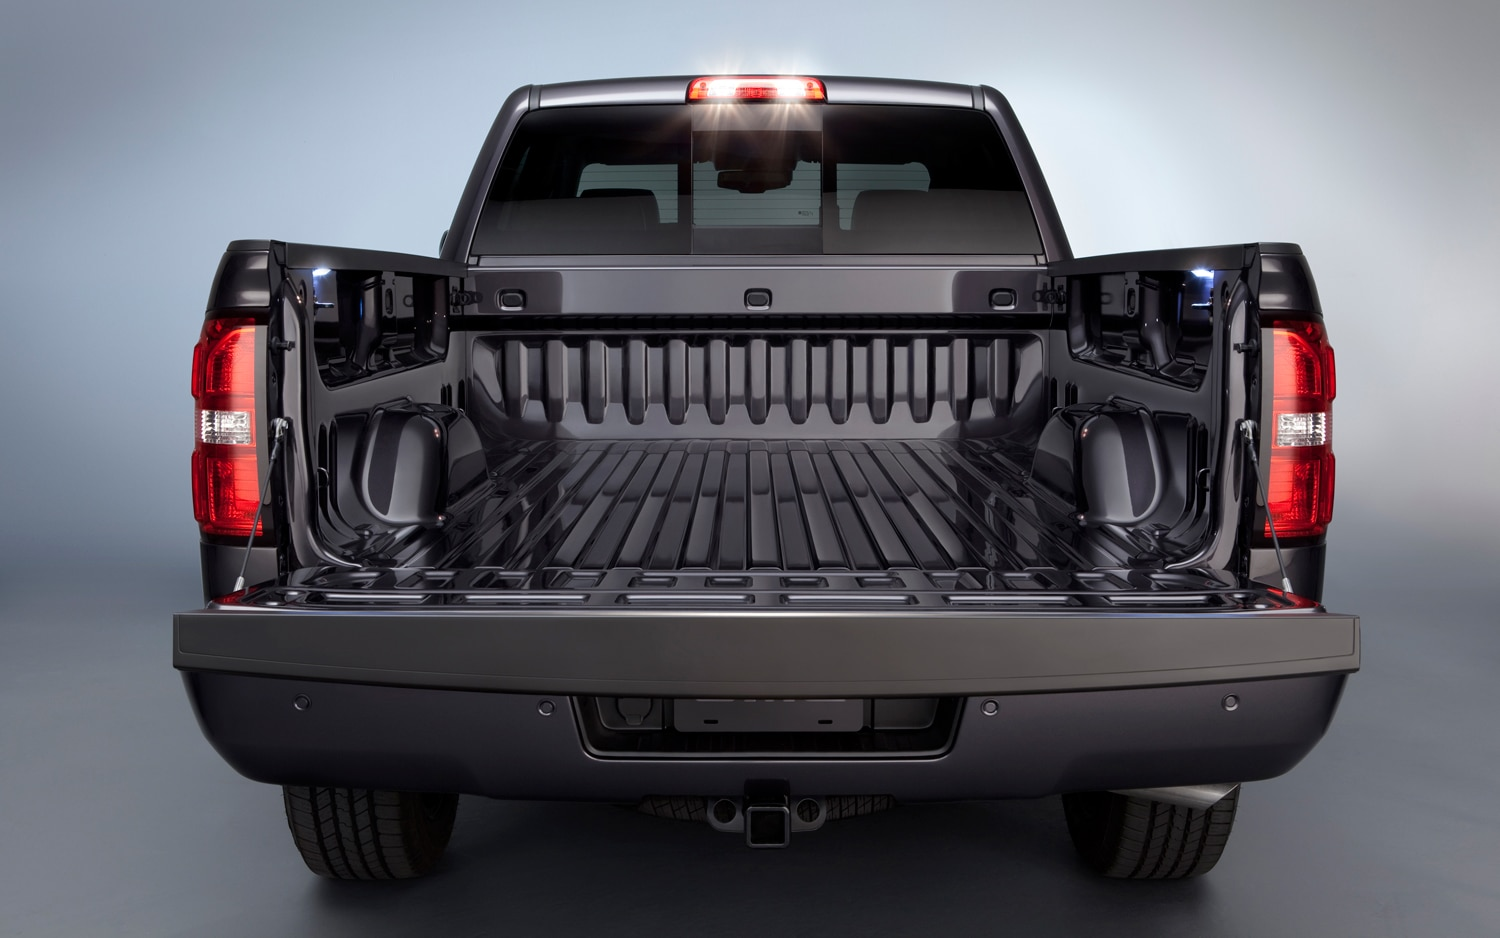 2014 GMC Sierra Bed Lighting